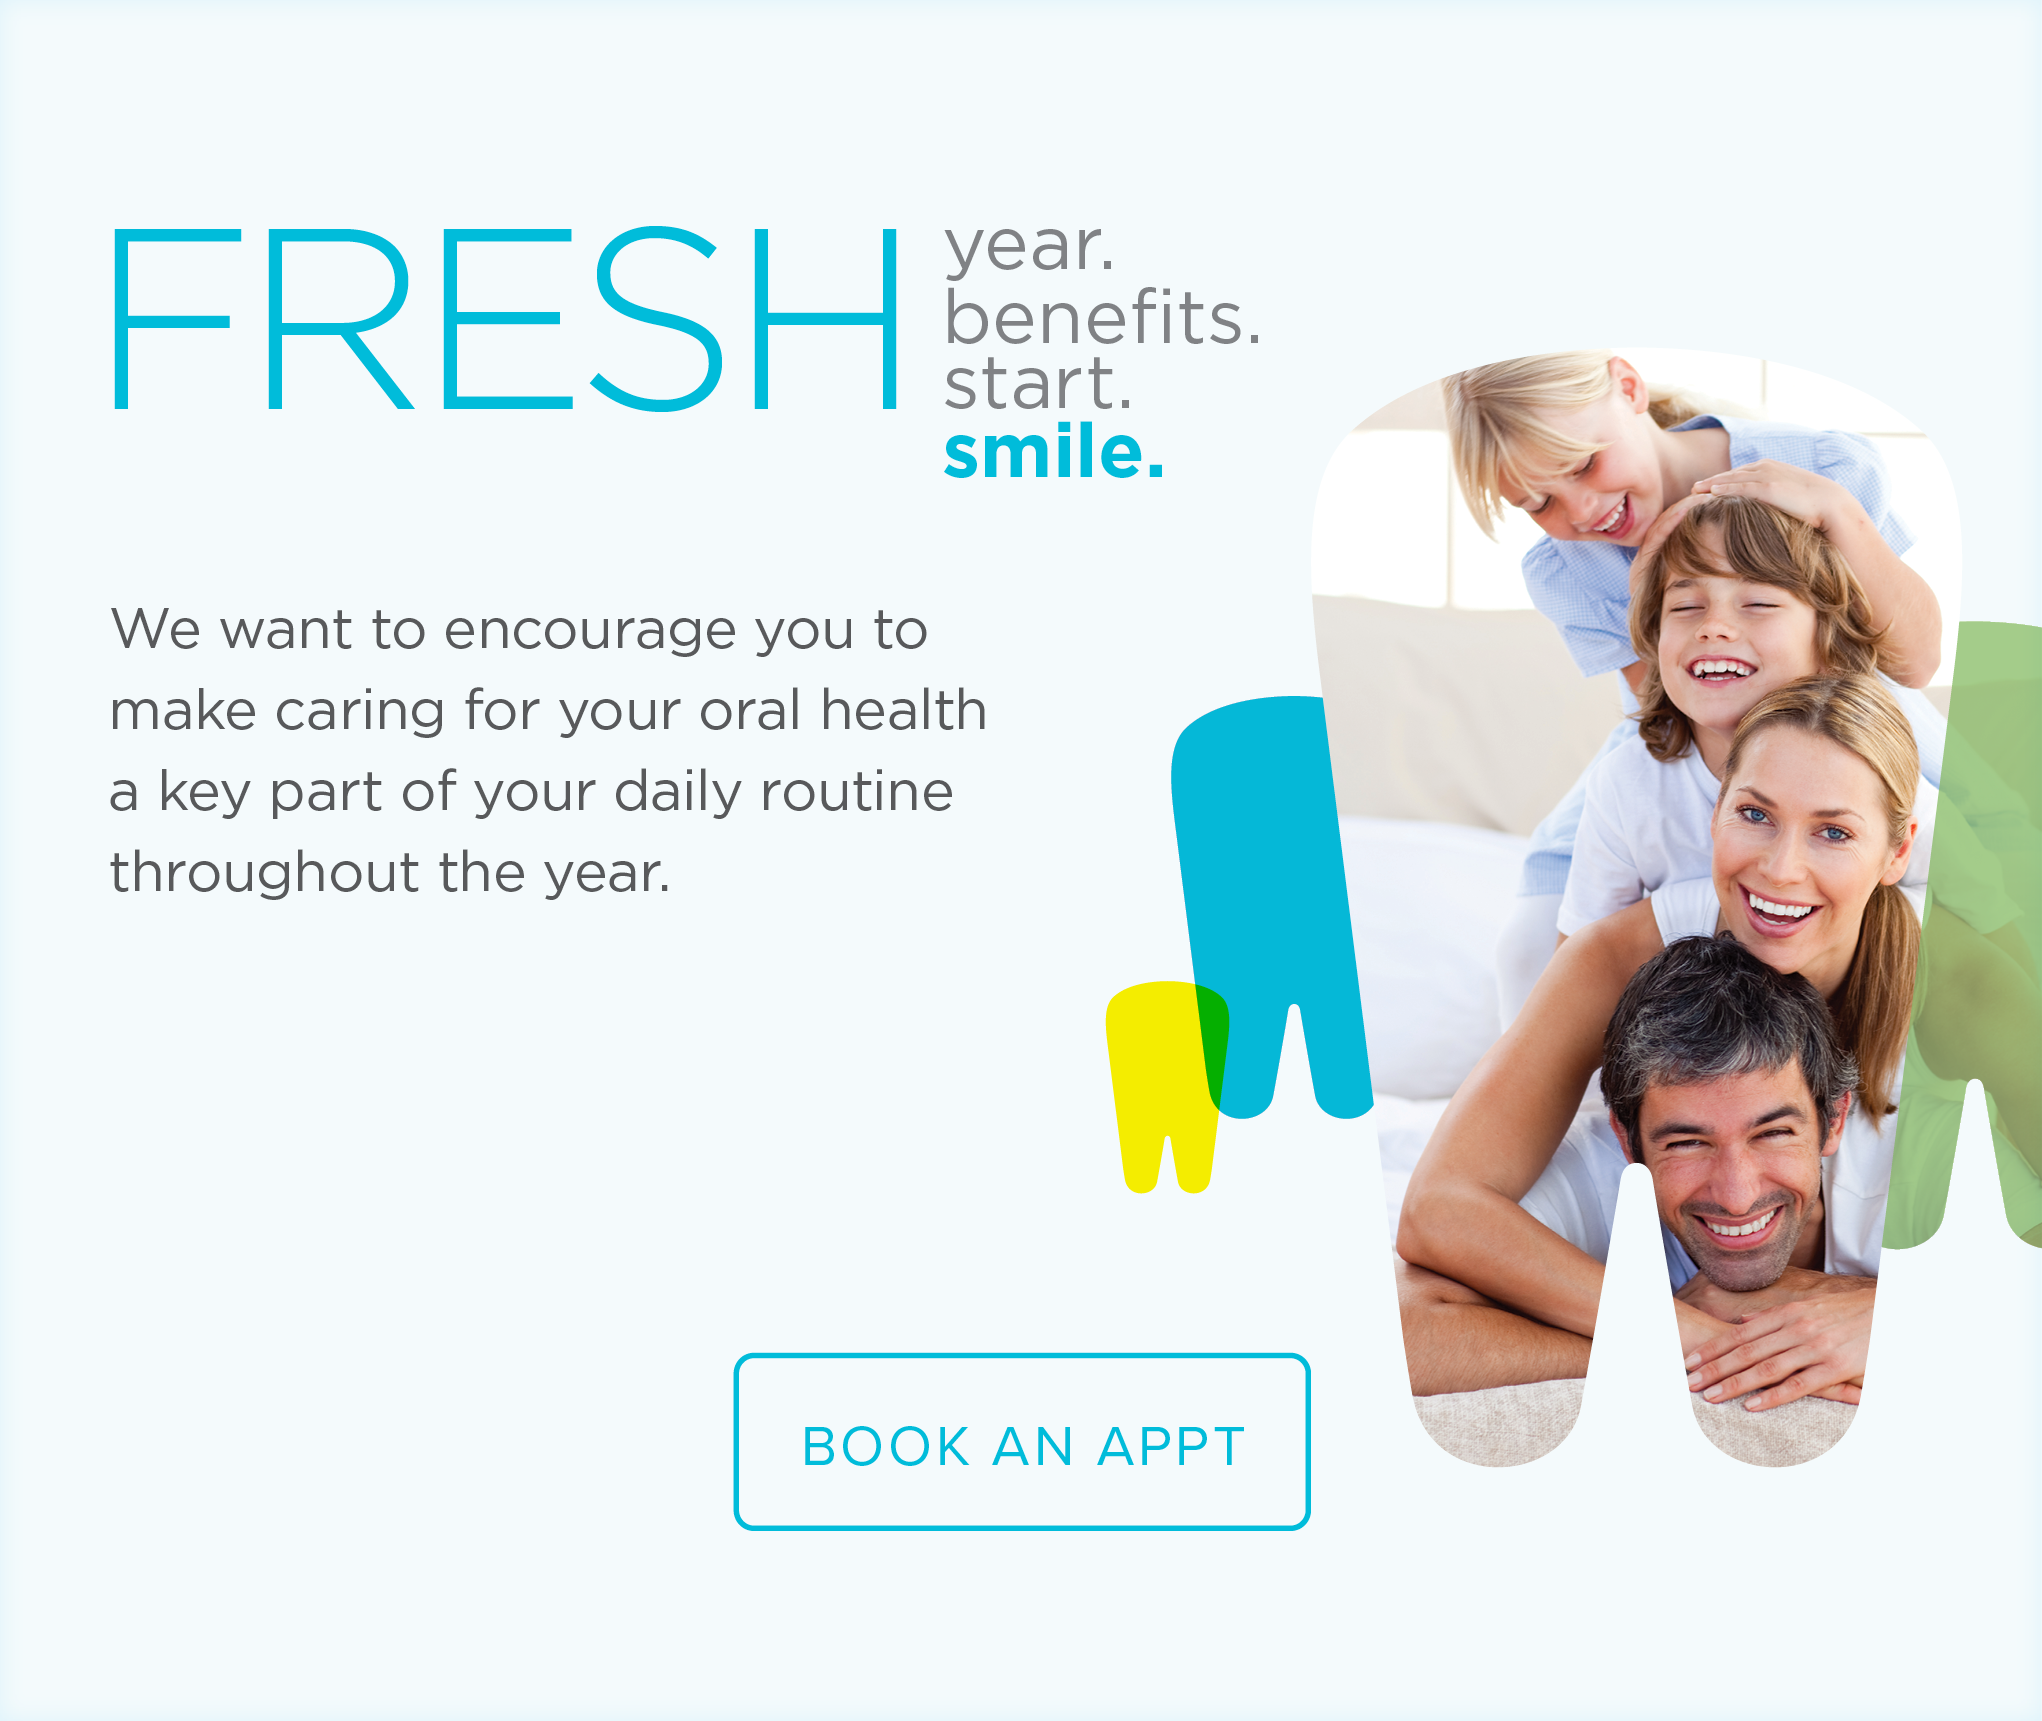 Stephanie Dental Group - Make the Most of Your Benefits